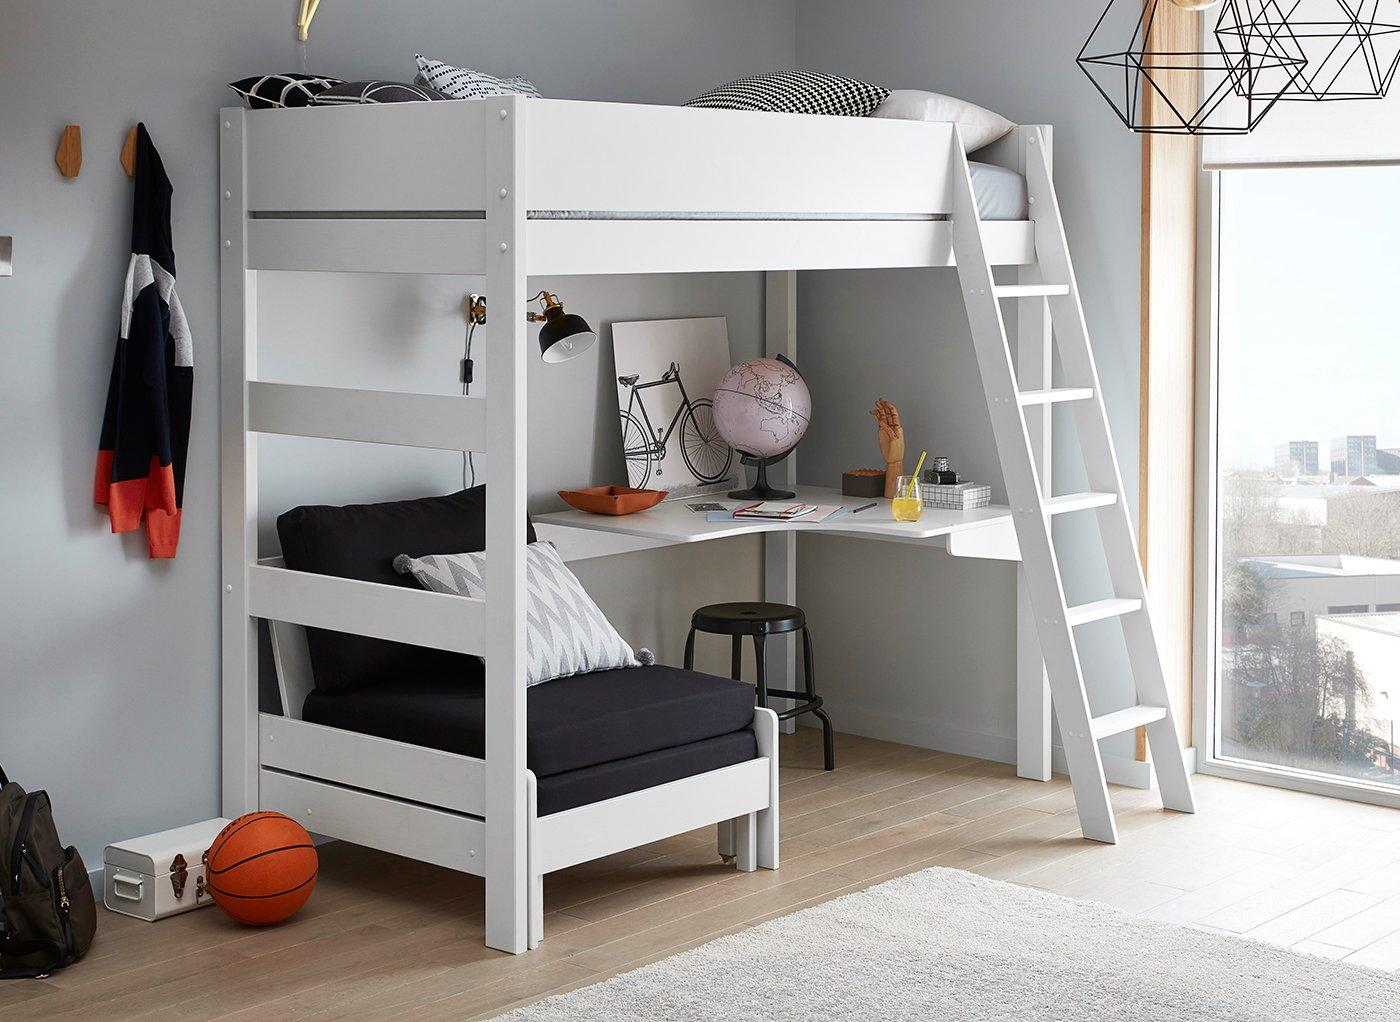 Picture of: Anderson Desk High Sleeper With Black Chair Kids Beds Kids Dreams